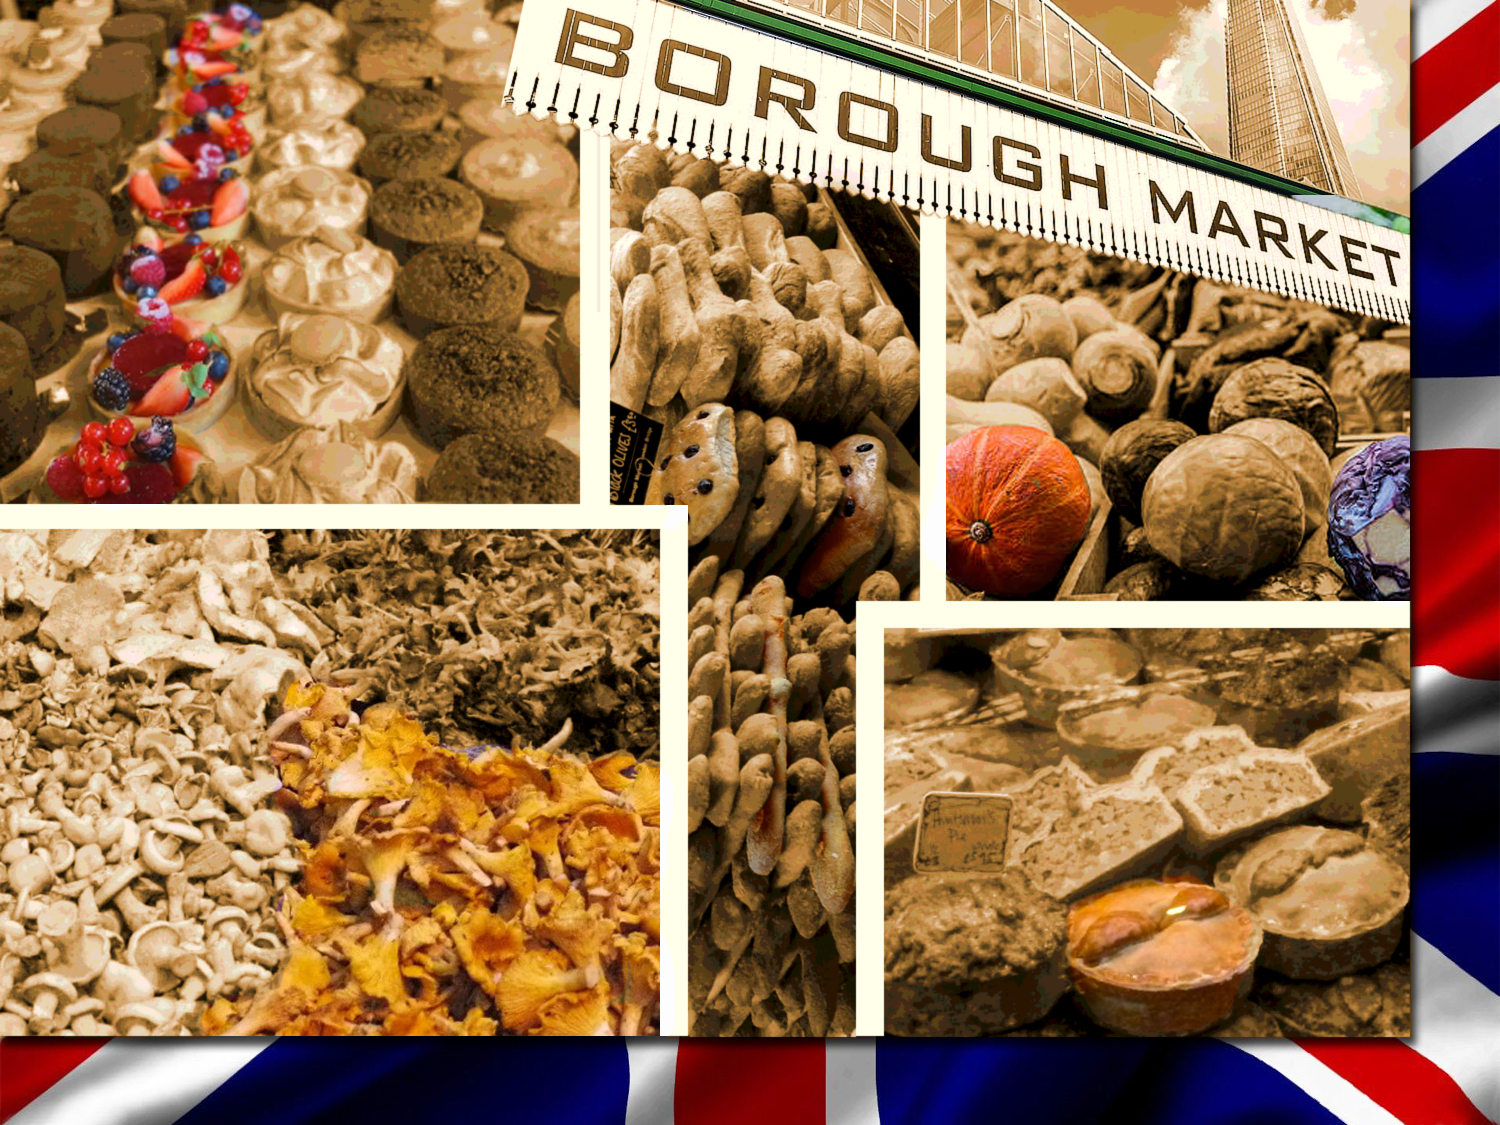 06_piac_borough_market_london_nagy-britannia_anglia_great_britain_england_utazas_europaba.jpg